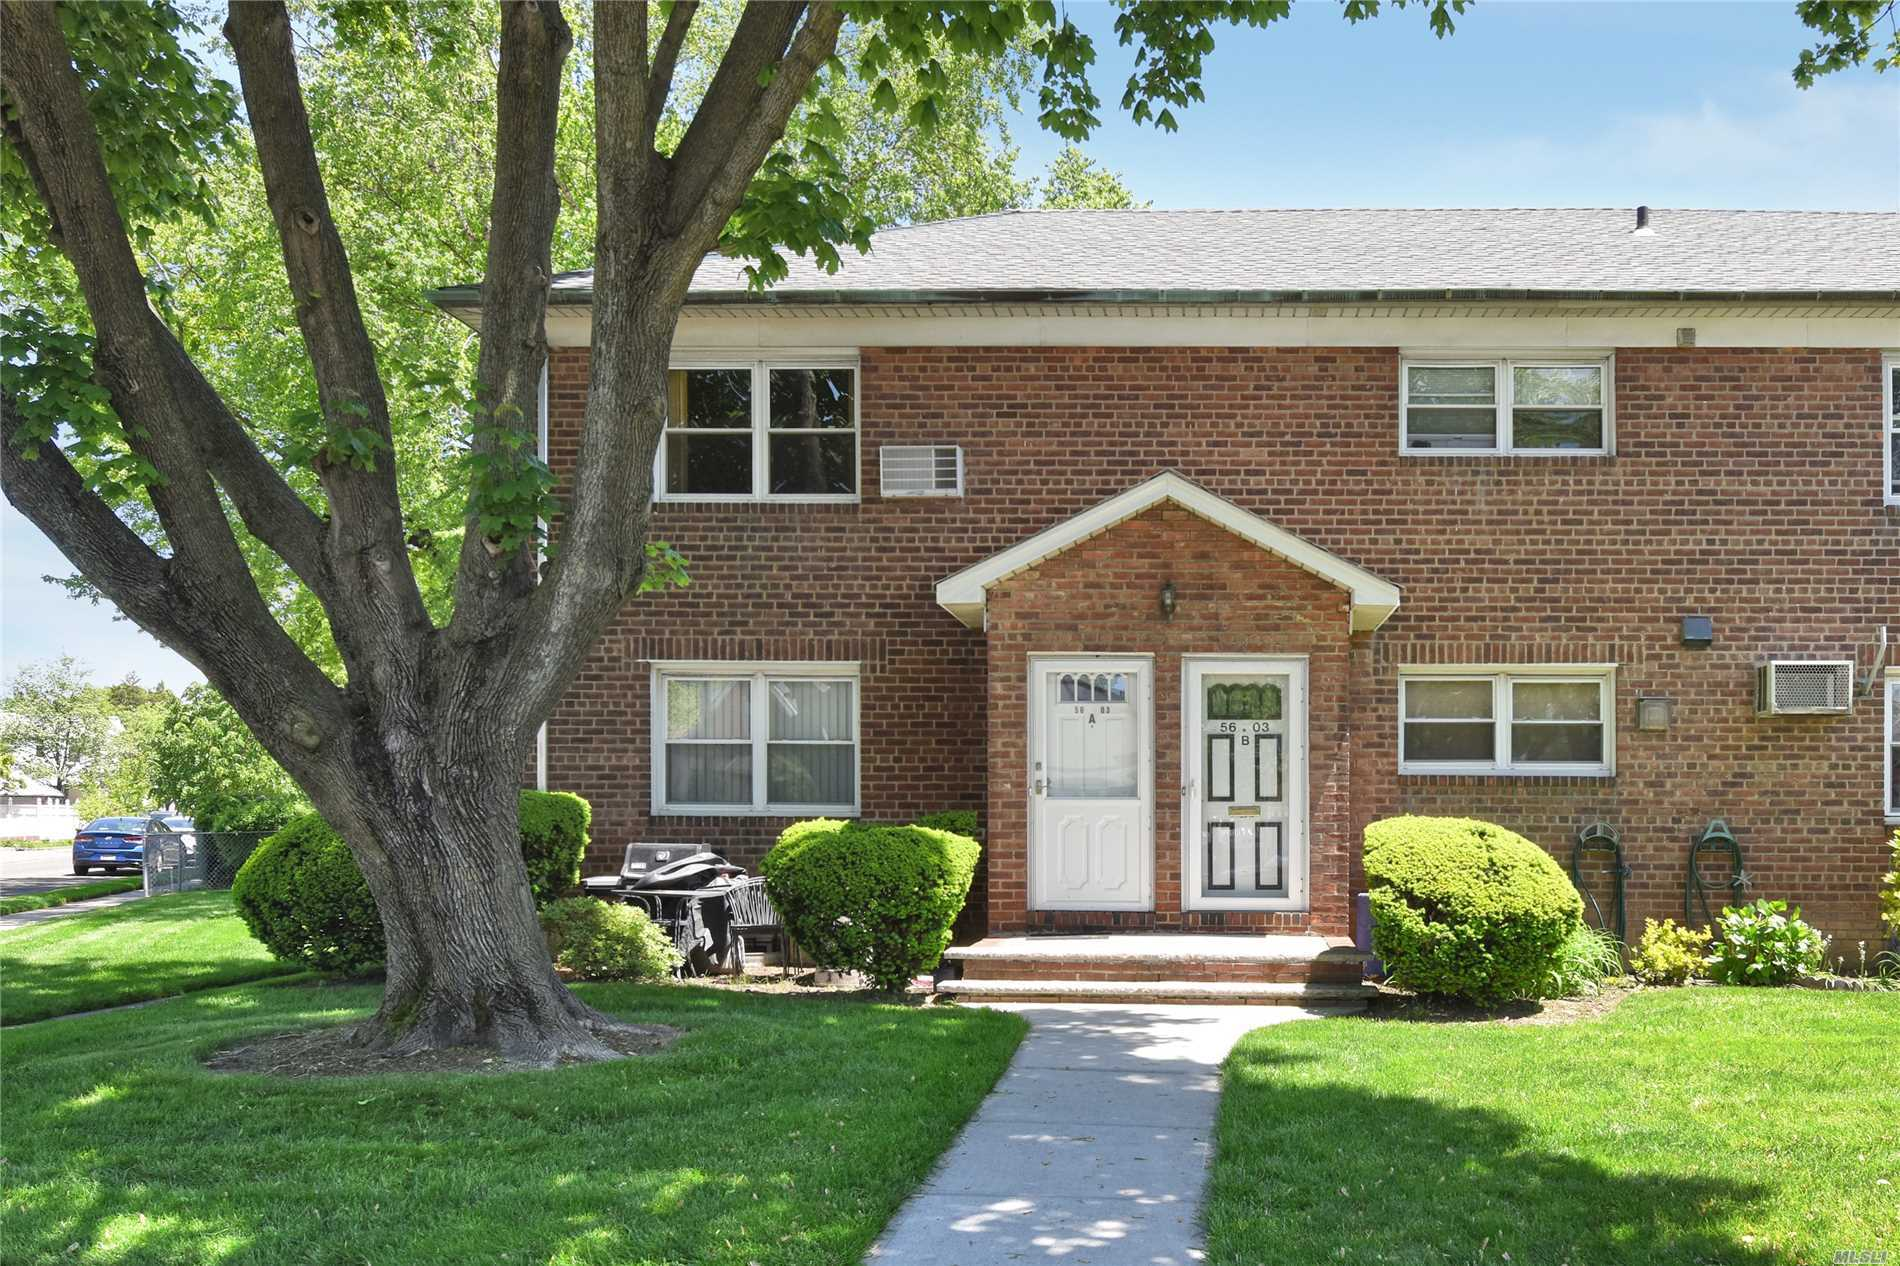 Just arrived- affordable 2 bedroom, 1 bath condo in beautiful Fresh Meadows. This upper unit is spacious and convenient to buses along Utopia Parkway, shopping, and schools. Won't last!